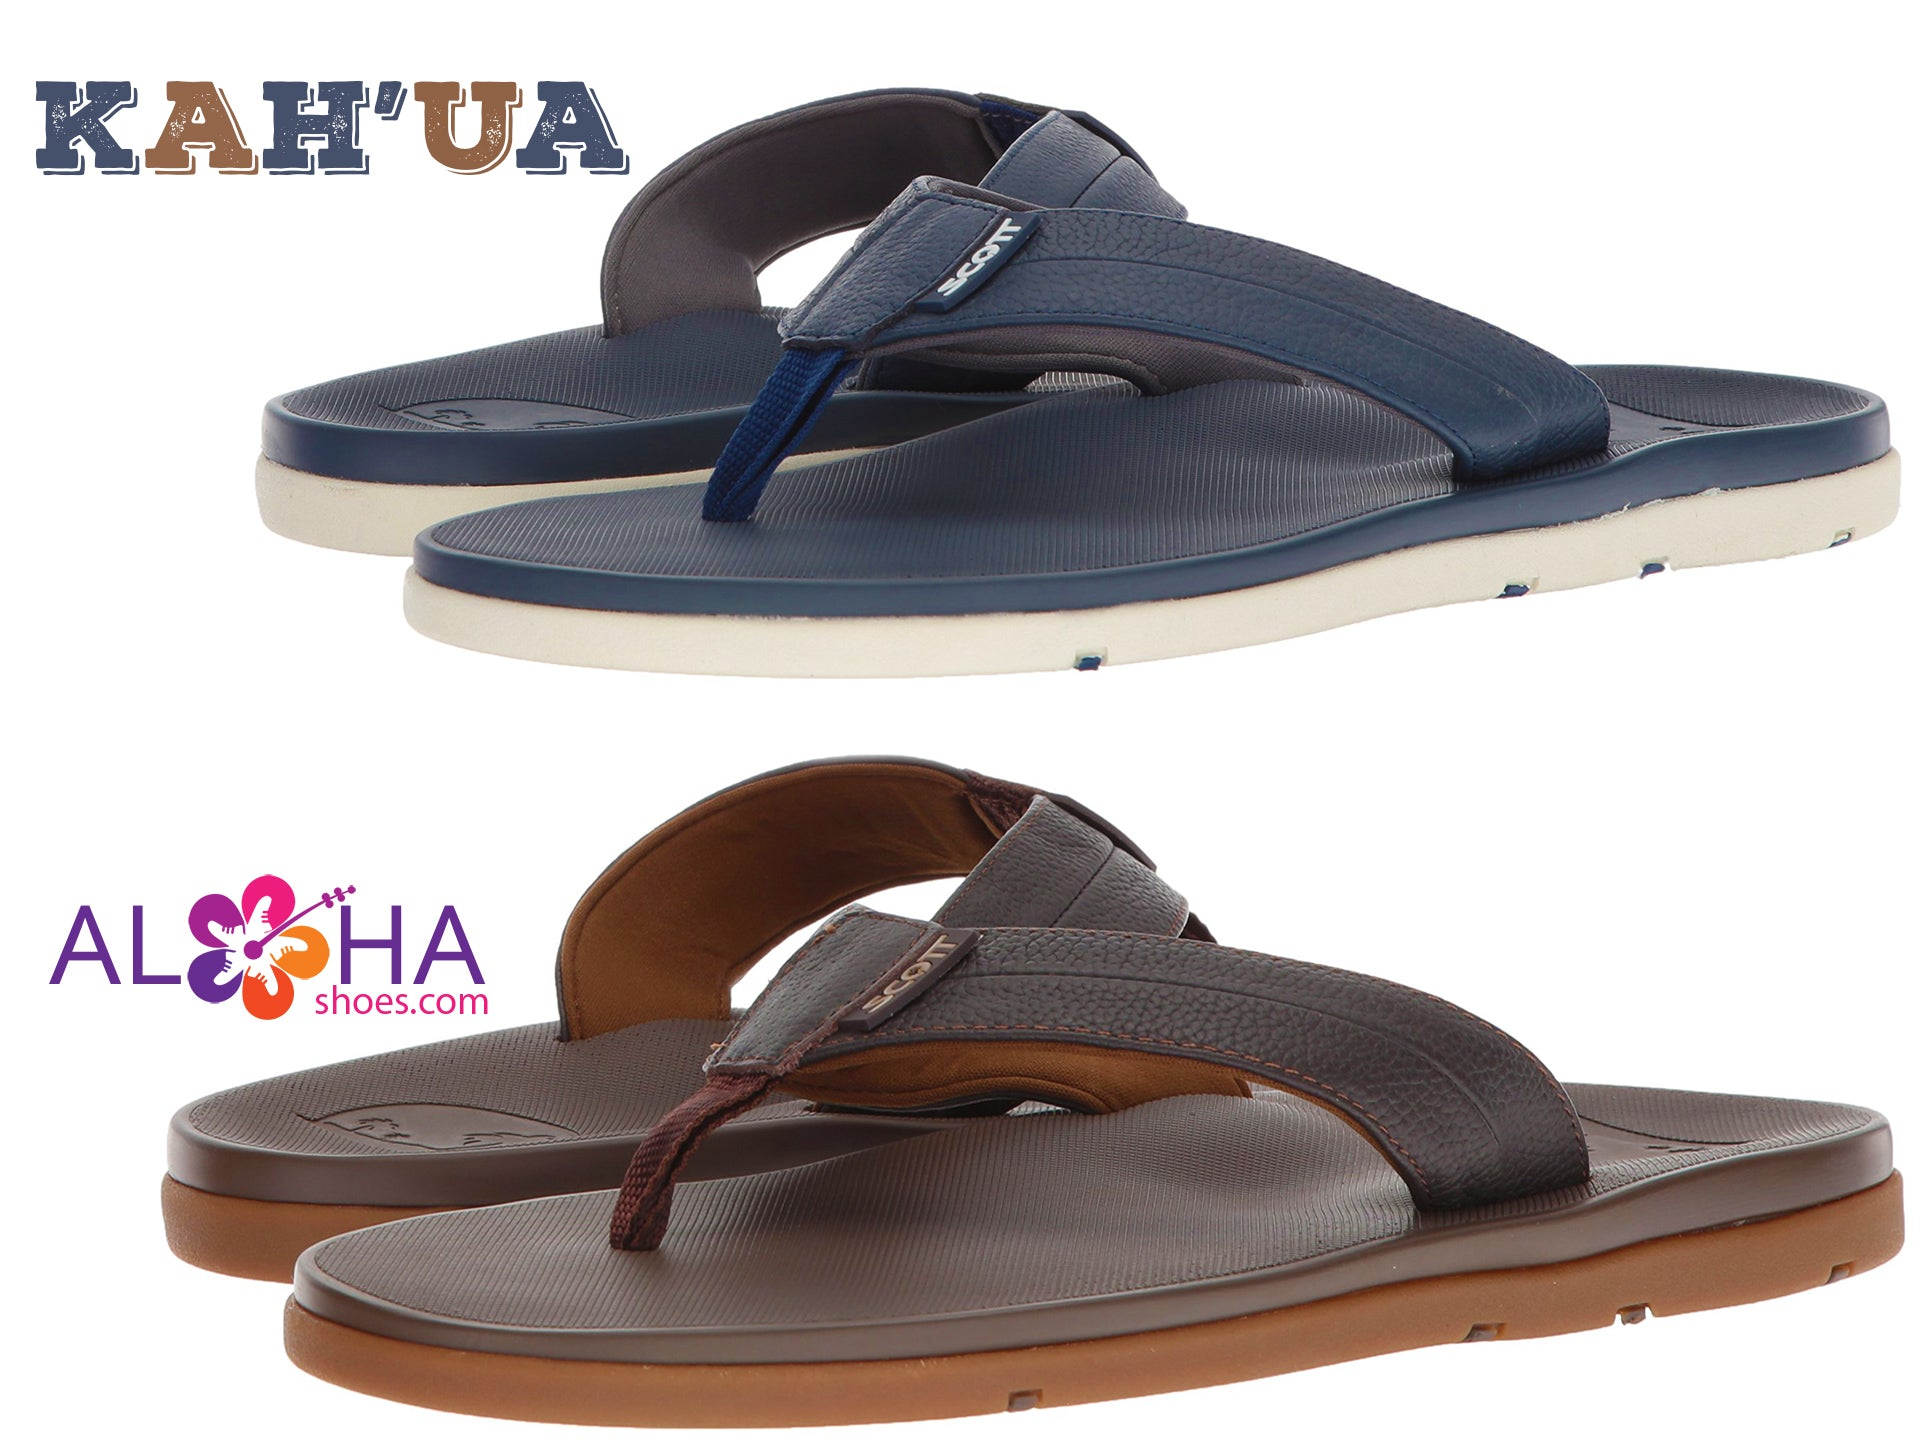 Scott Hawaii Leather Kahua Sandals | Neoprene Lined Strap - AlohaShoes.com